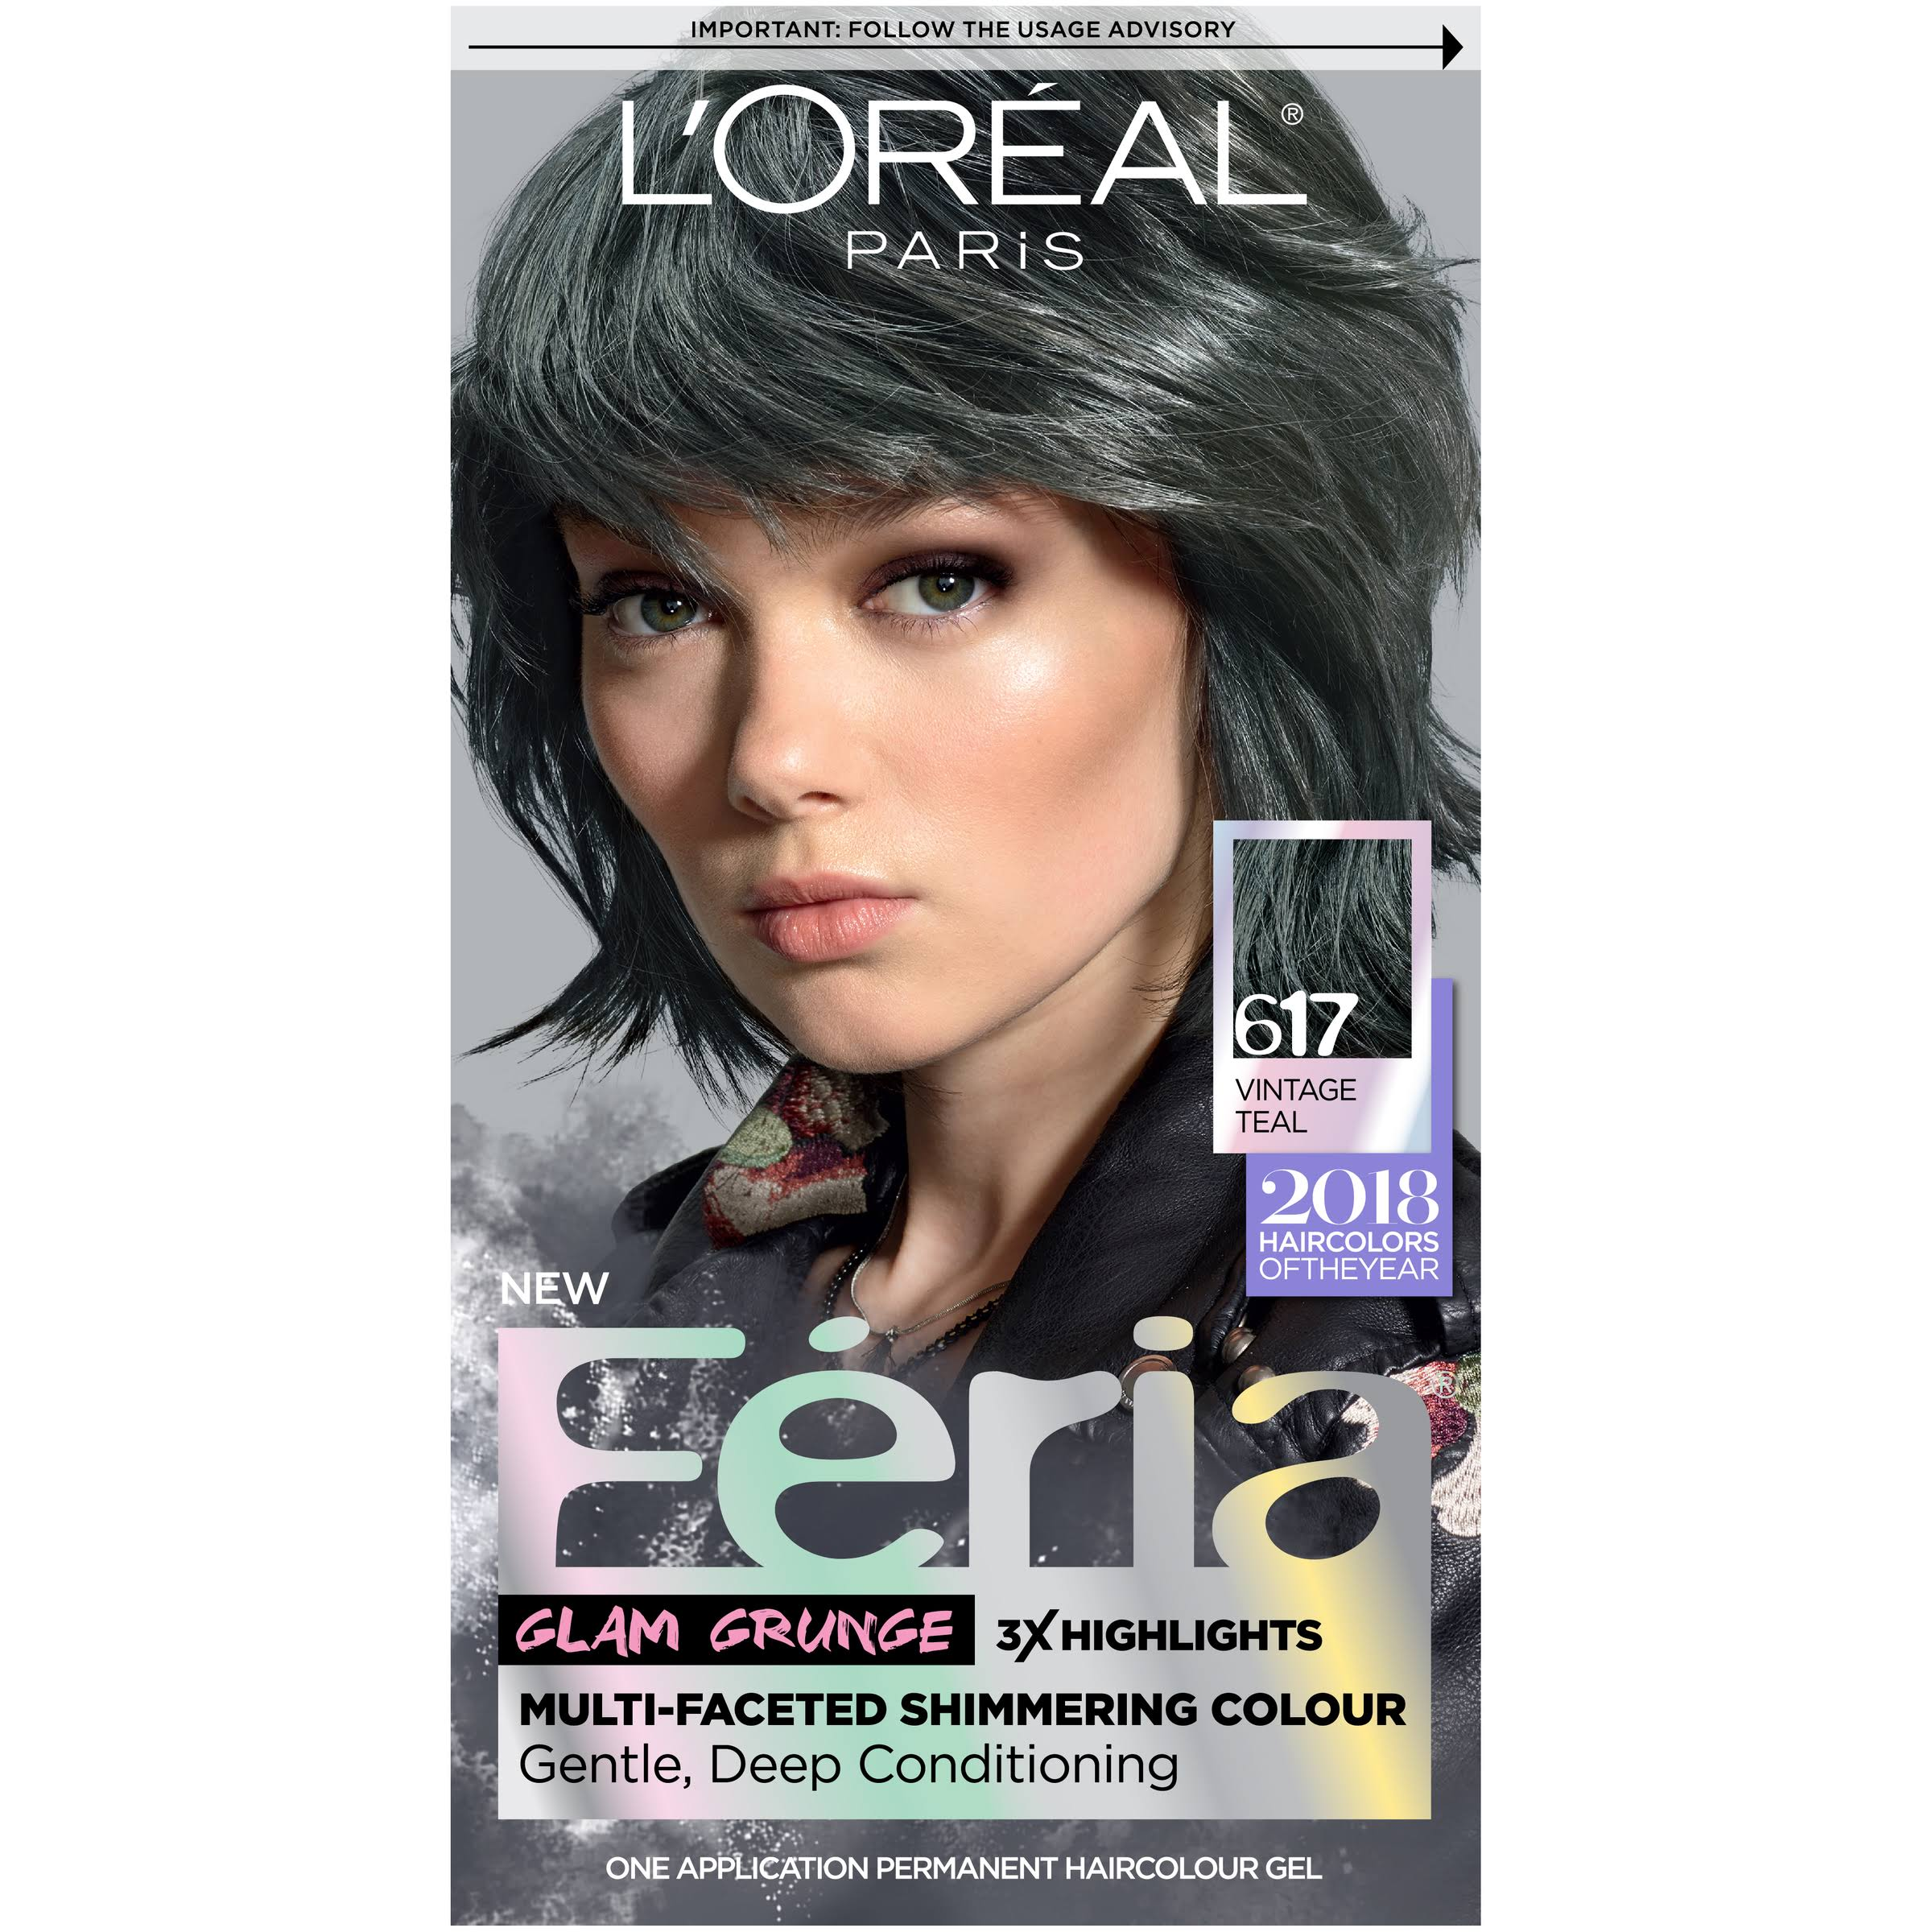 L'Oréal Paris Feria Permanent Hair Color - 617 Vintage Teal